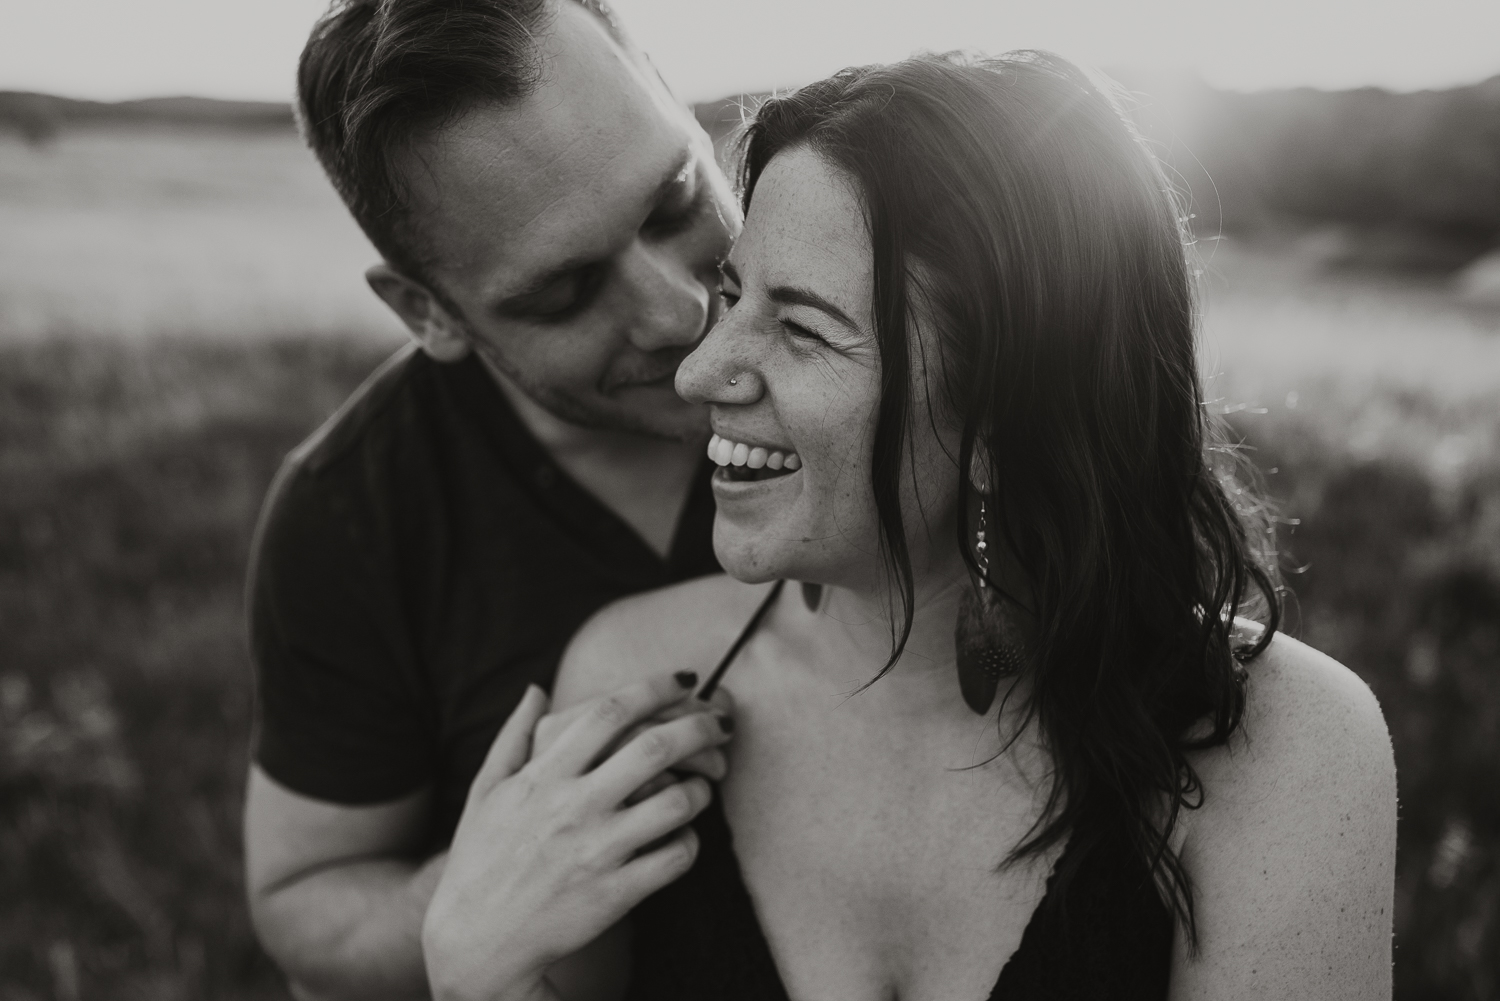 Emotive East Coast based photographer, Morgan Ellis, the best photographer for couples looking for emotional images for their engagement, anniversary or just to celebrate their connection with an intimate and adventurous photo session. Serving couples and families in PA, NJ, SC, NC, MA, ME, GA, OK, and beyond. Available worldwide wherever you want your story told.